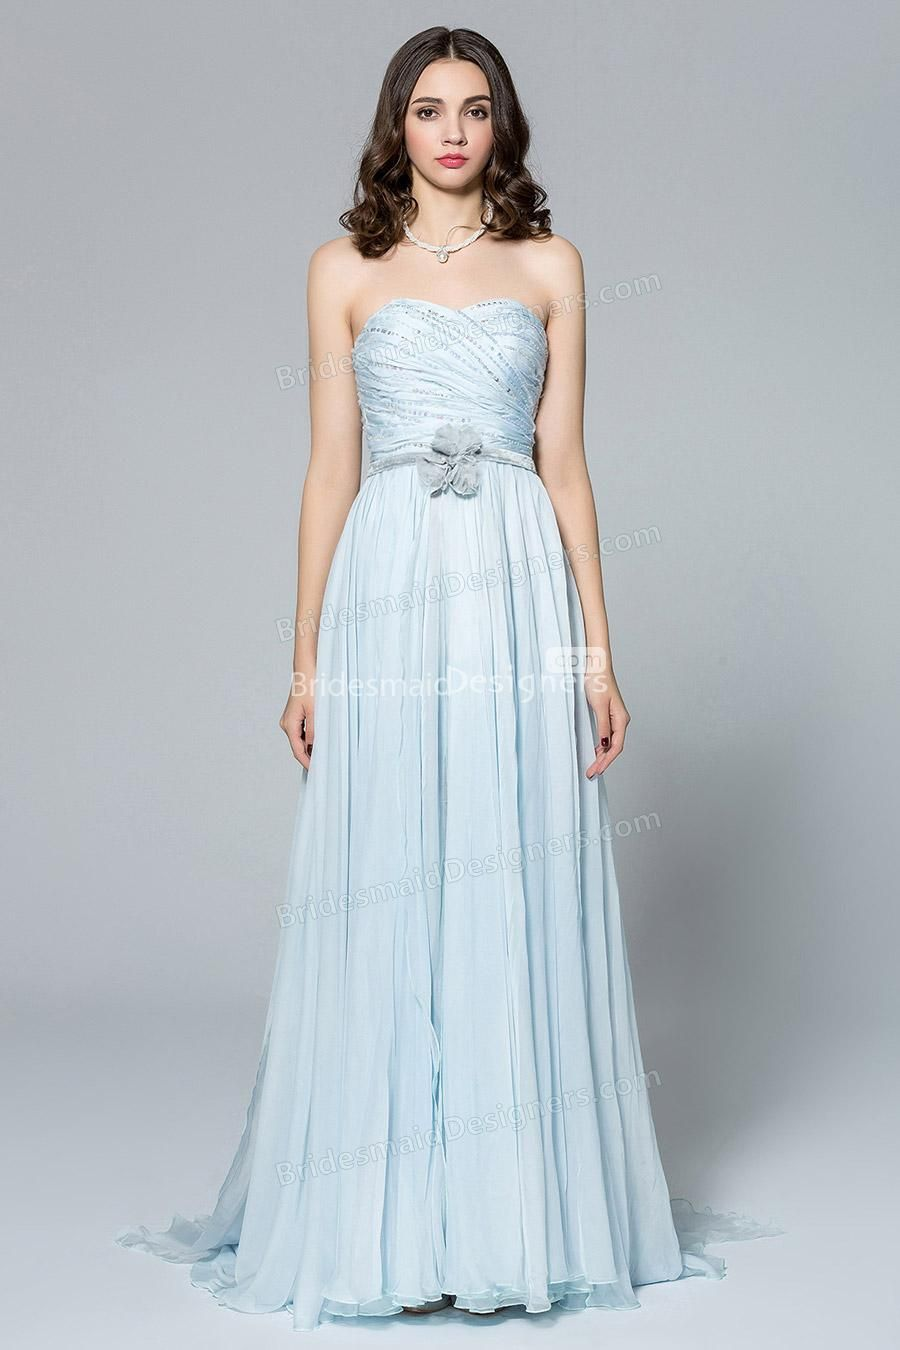 Strapless sweetheart ruched beaded bodice pale blue floor length